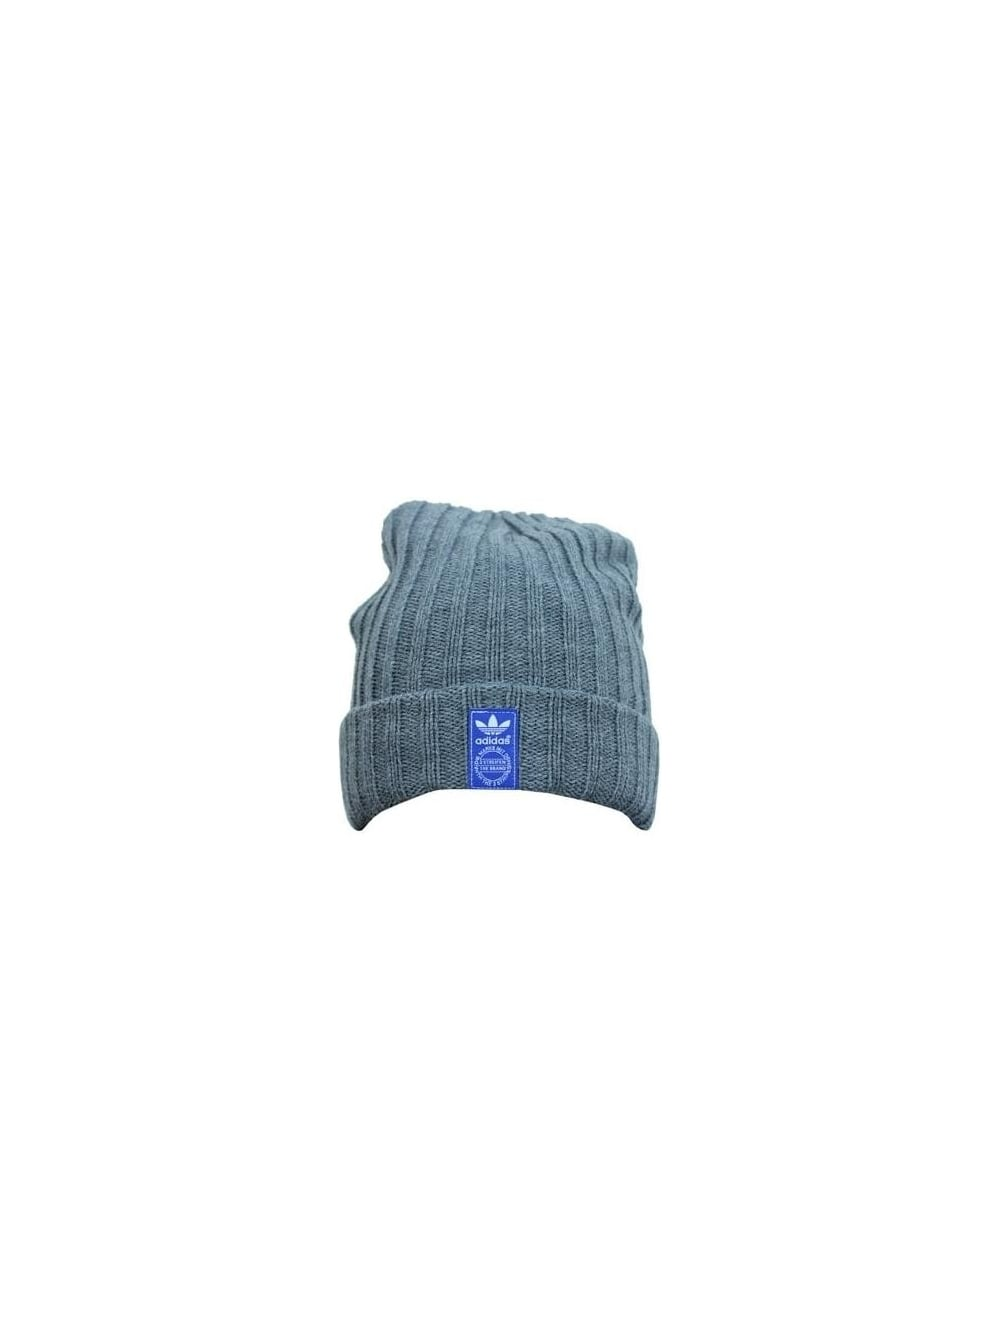 c06e00bf9fc Adidas Fisherman Beanie in Mid Grey - Northern Threads